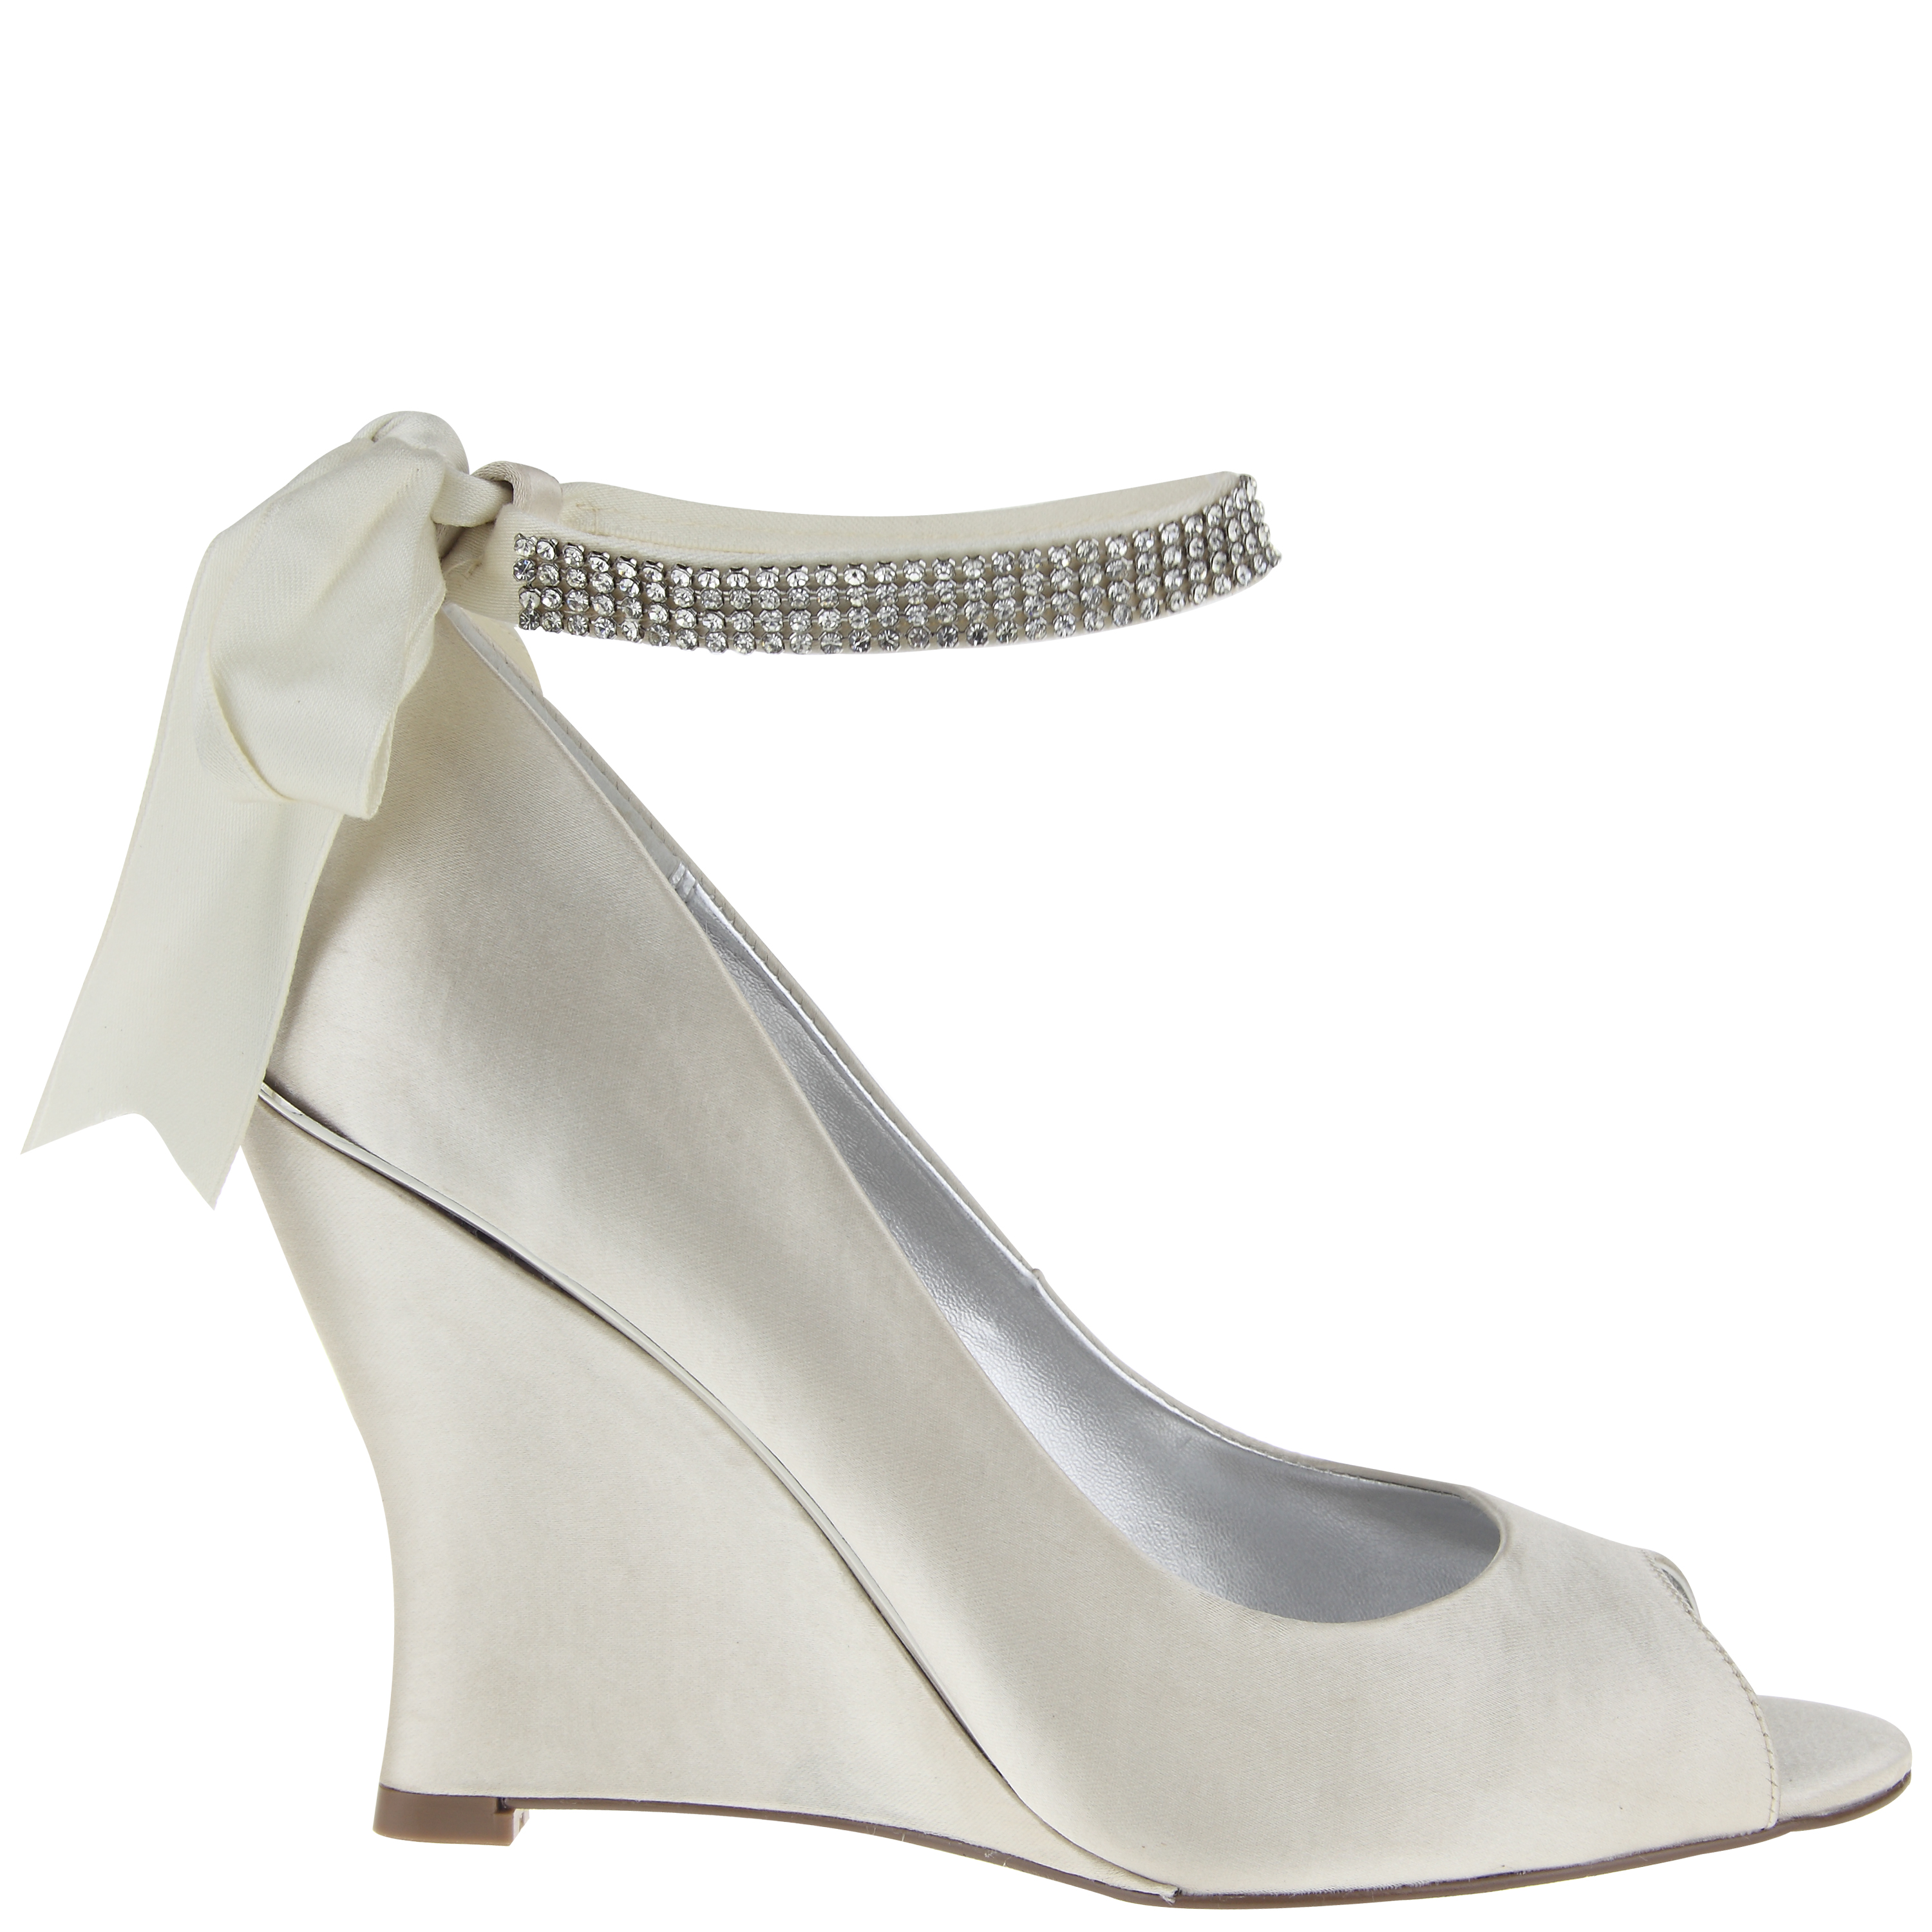 Wedding Shoes Bridal Shoes Pumps Sandals Wedge by Nina Shoes